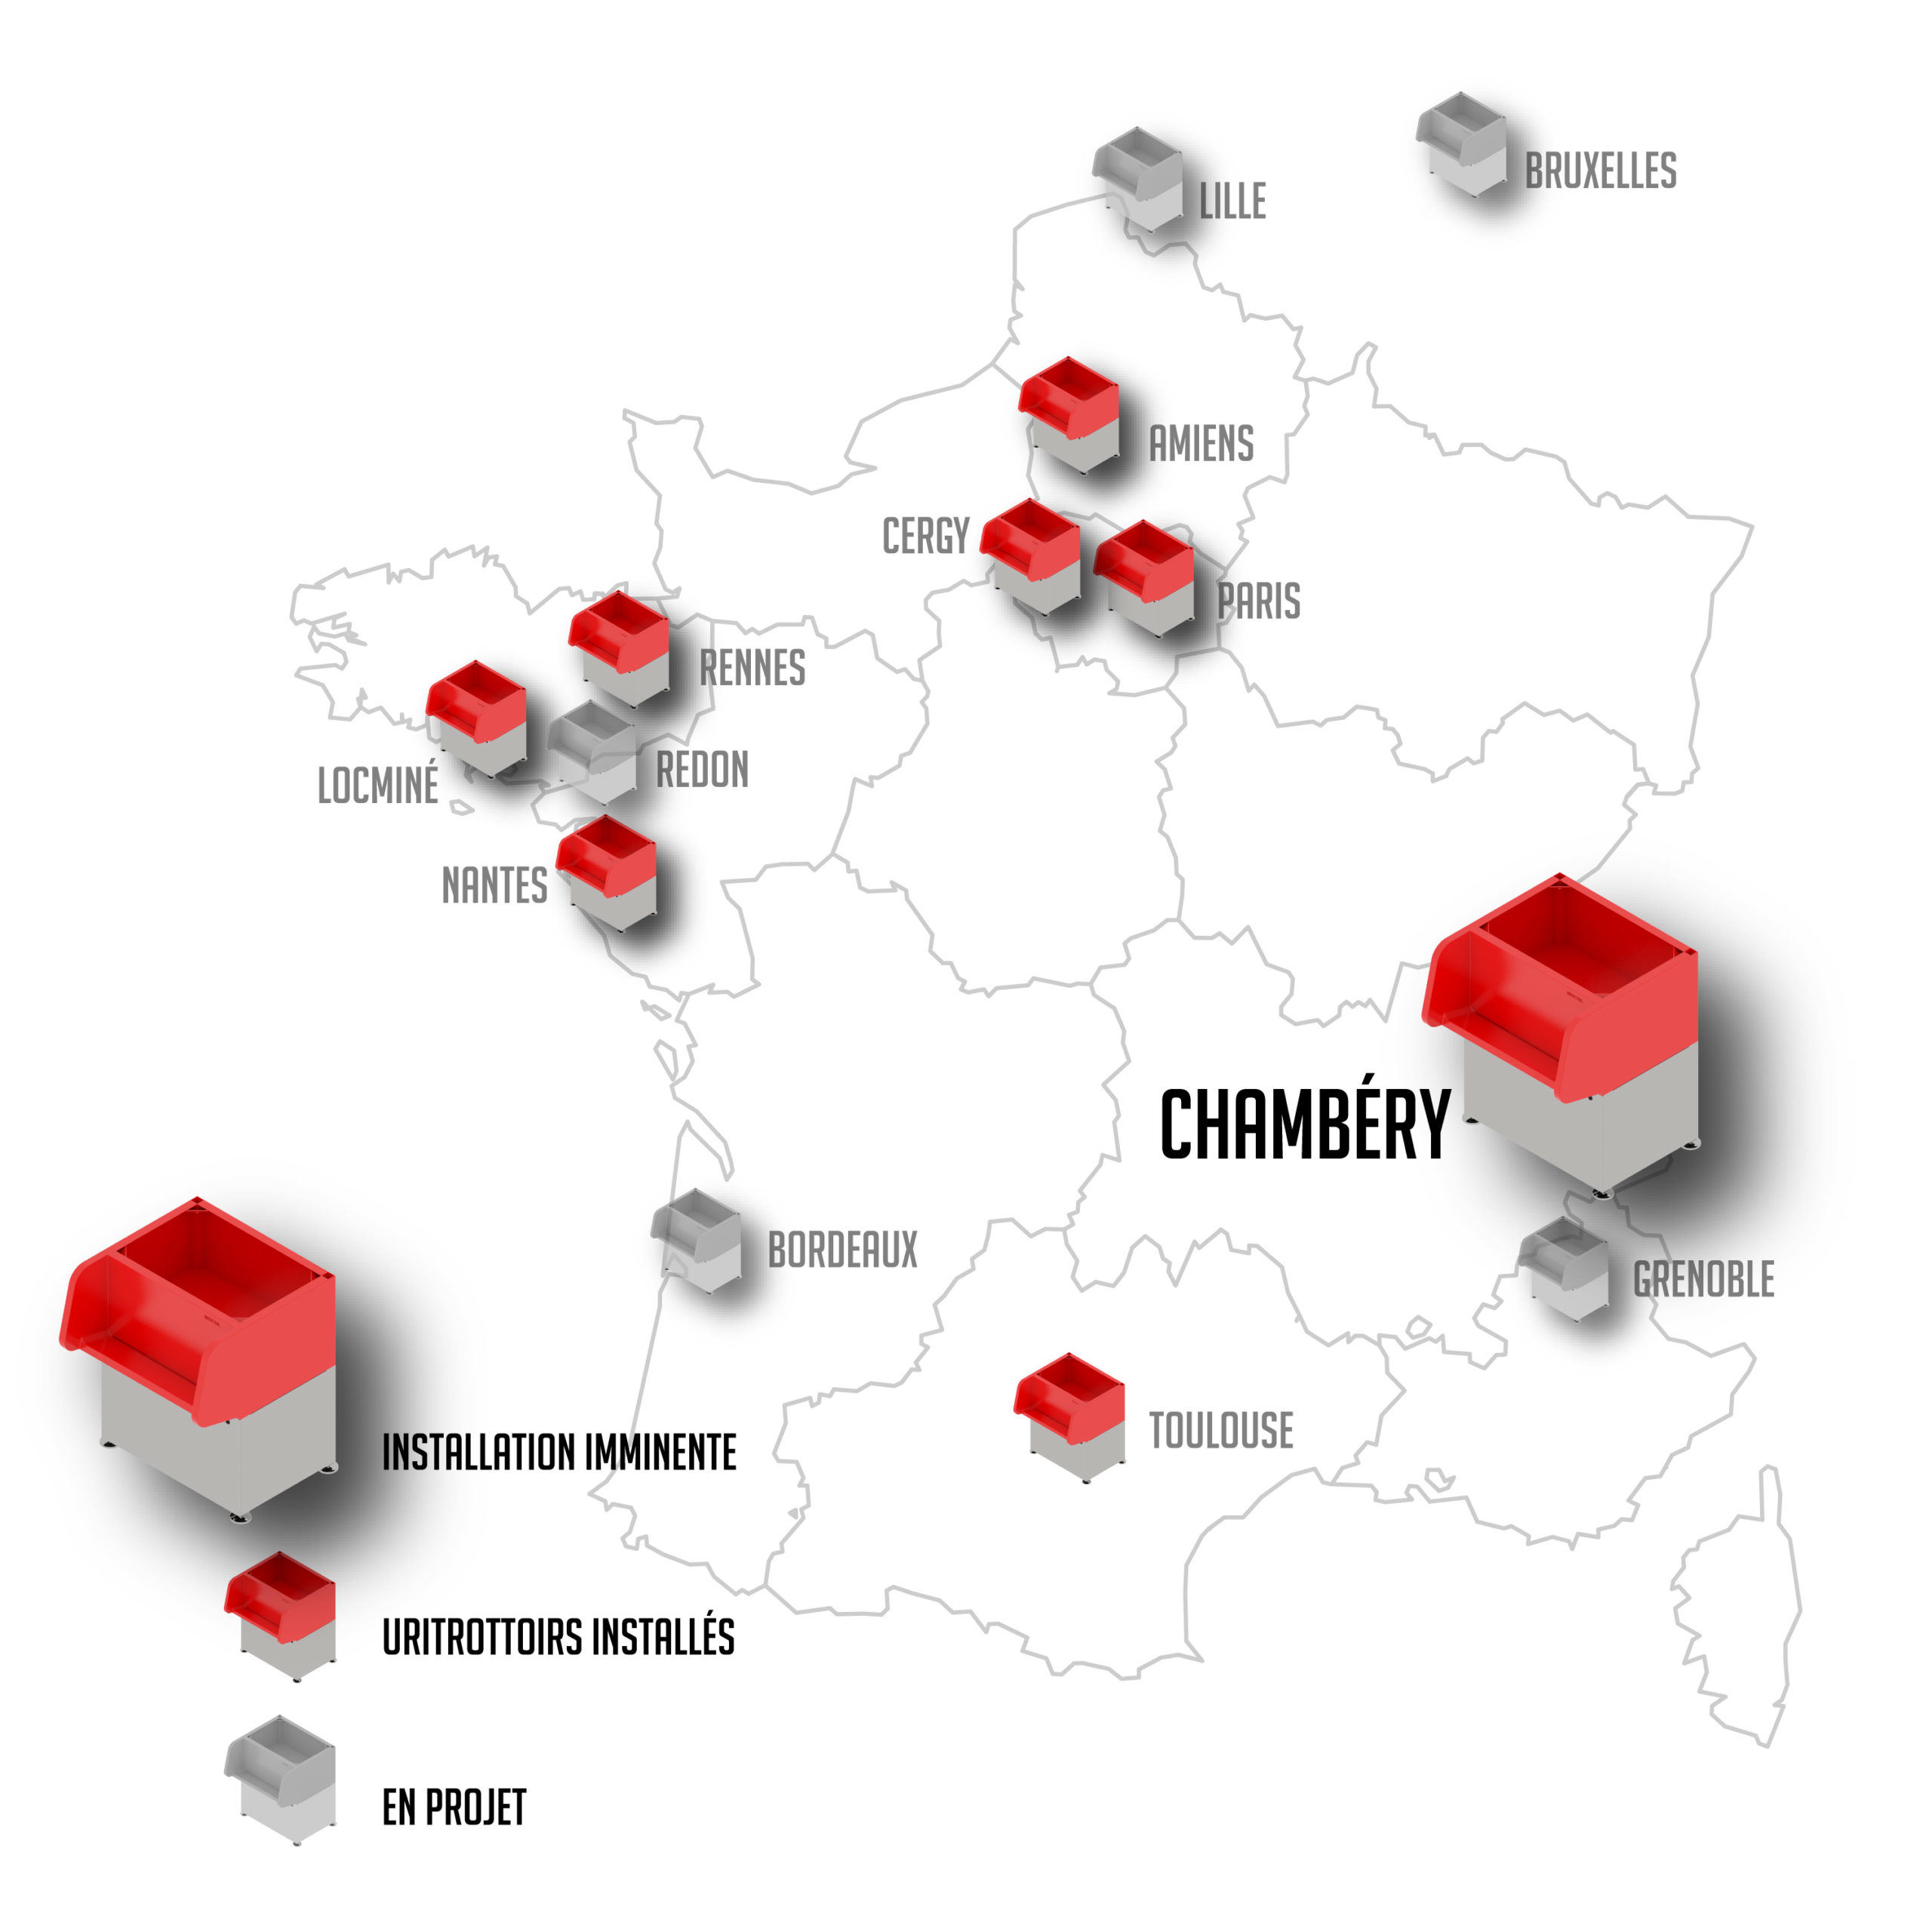 Carte uritrottoir Chambéry